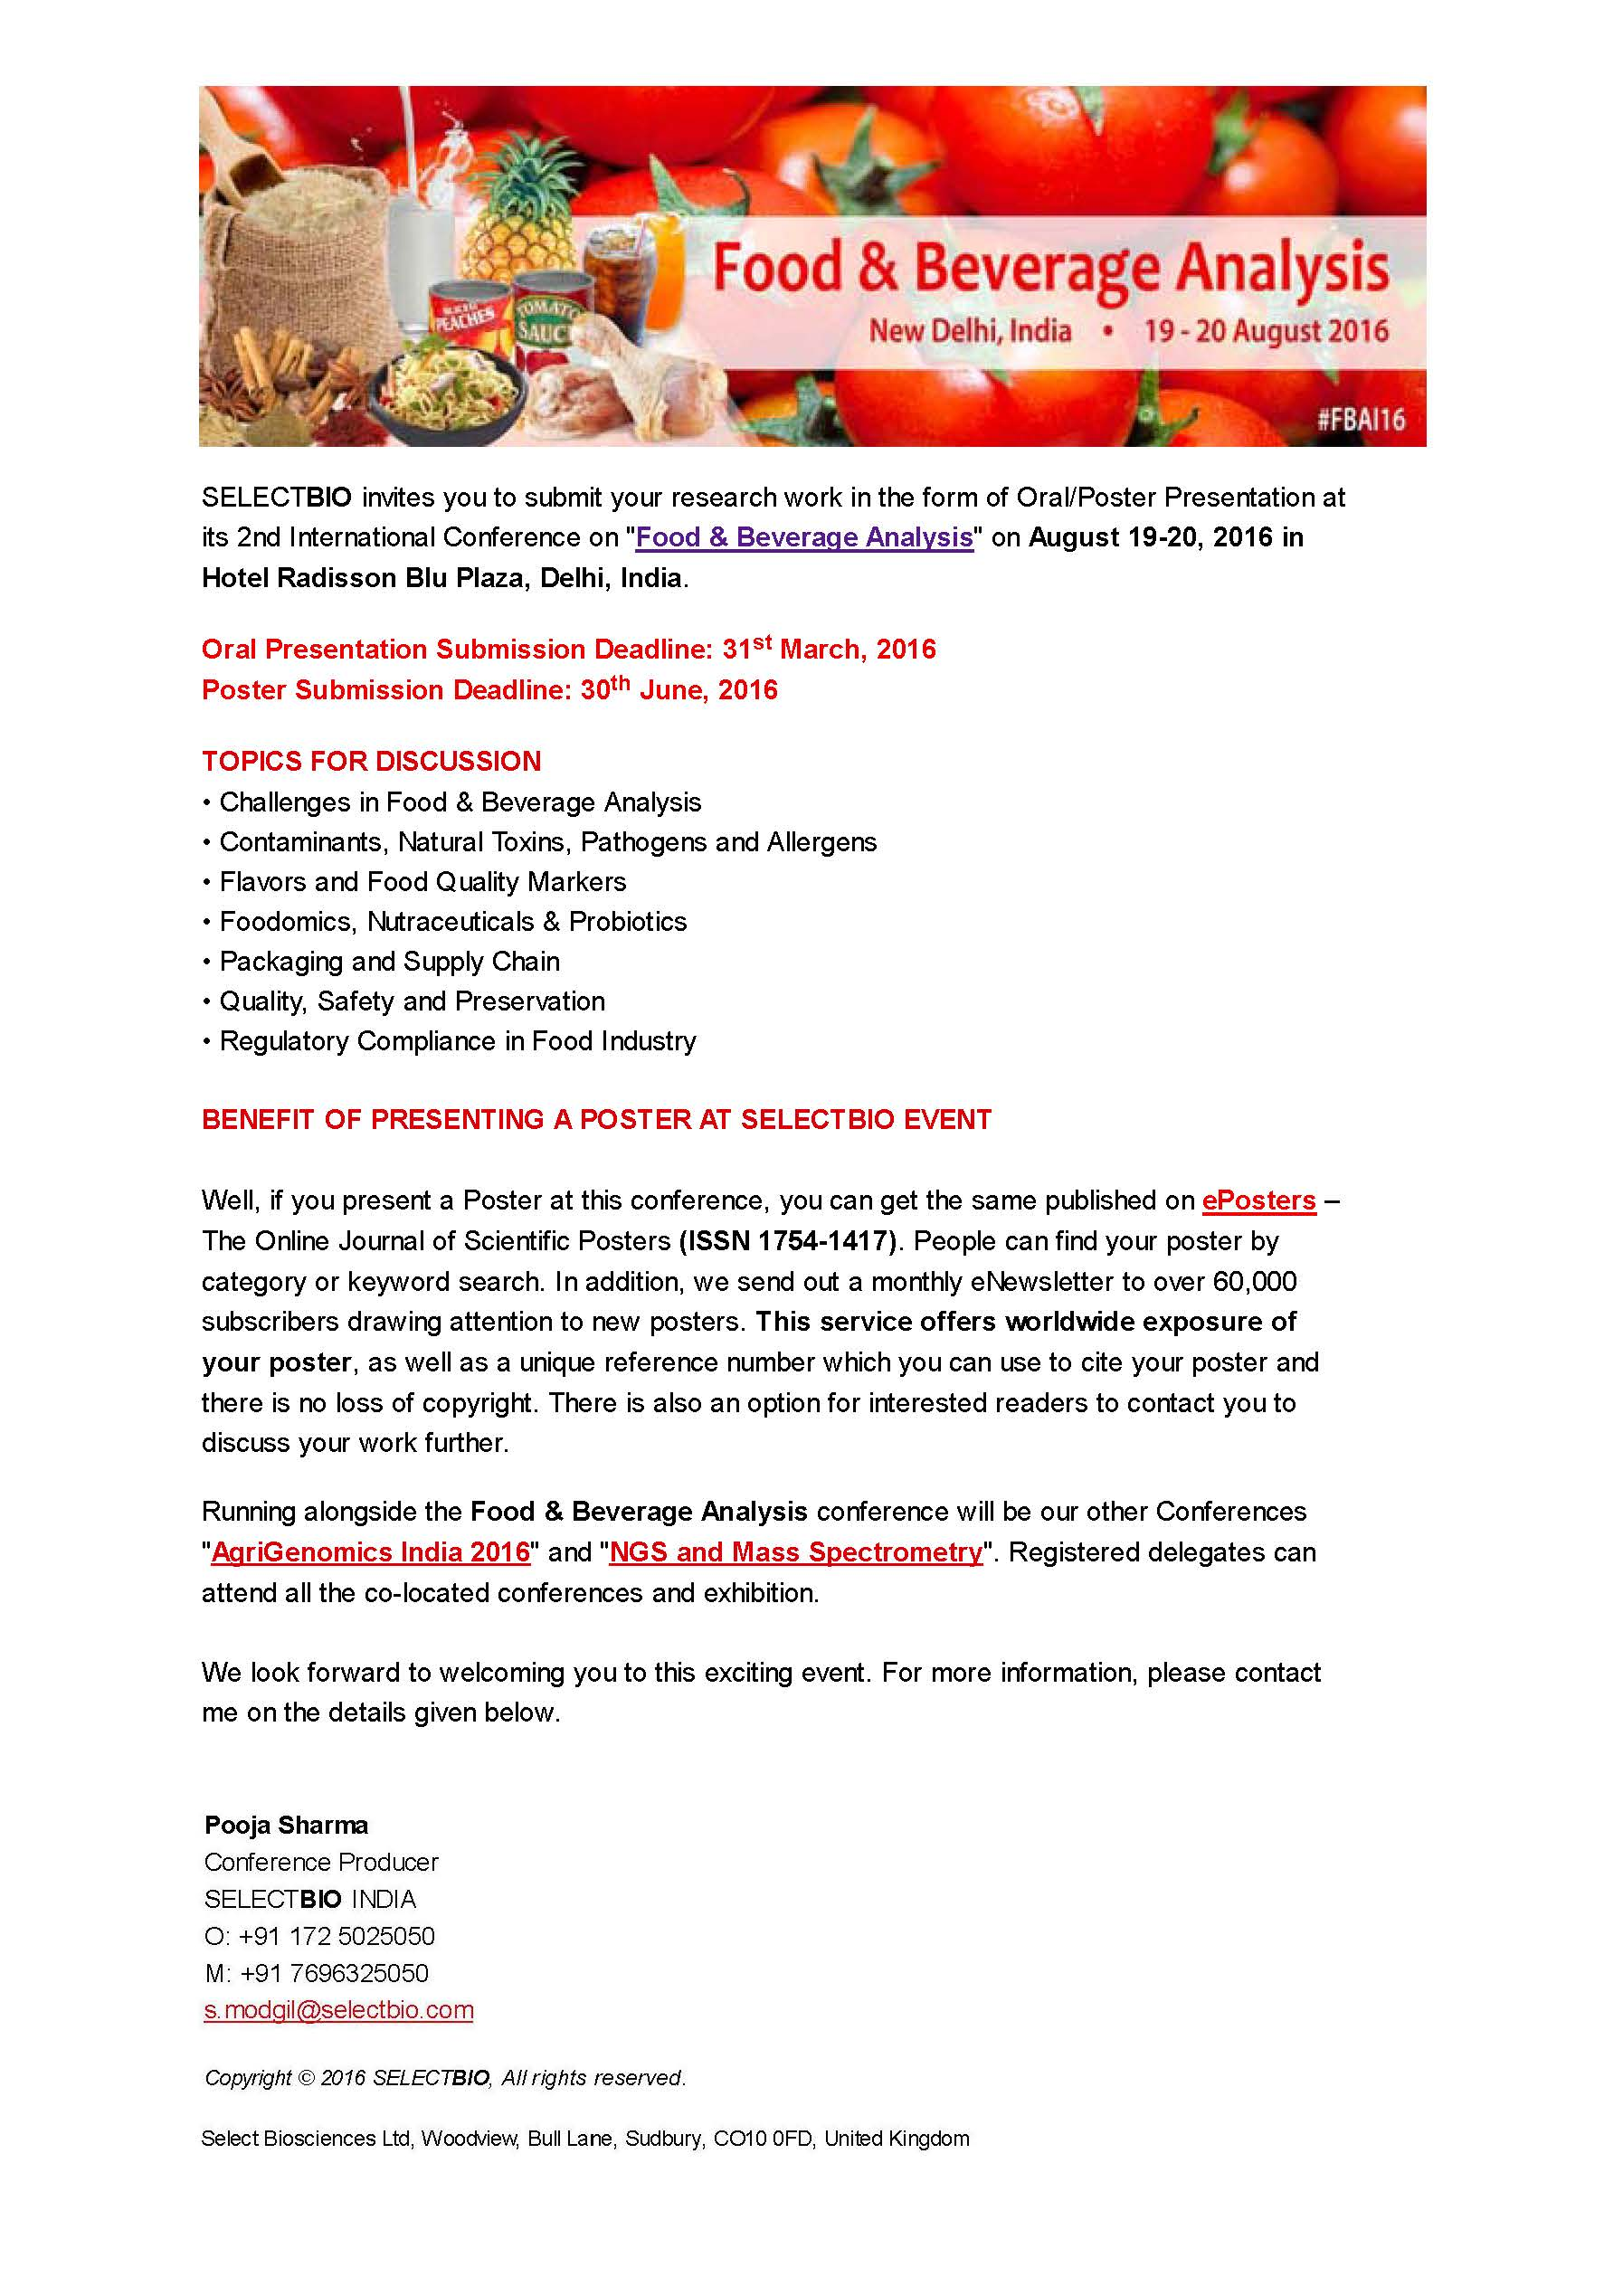 Food and Beverage Analysis